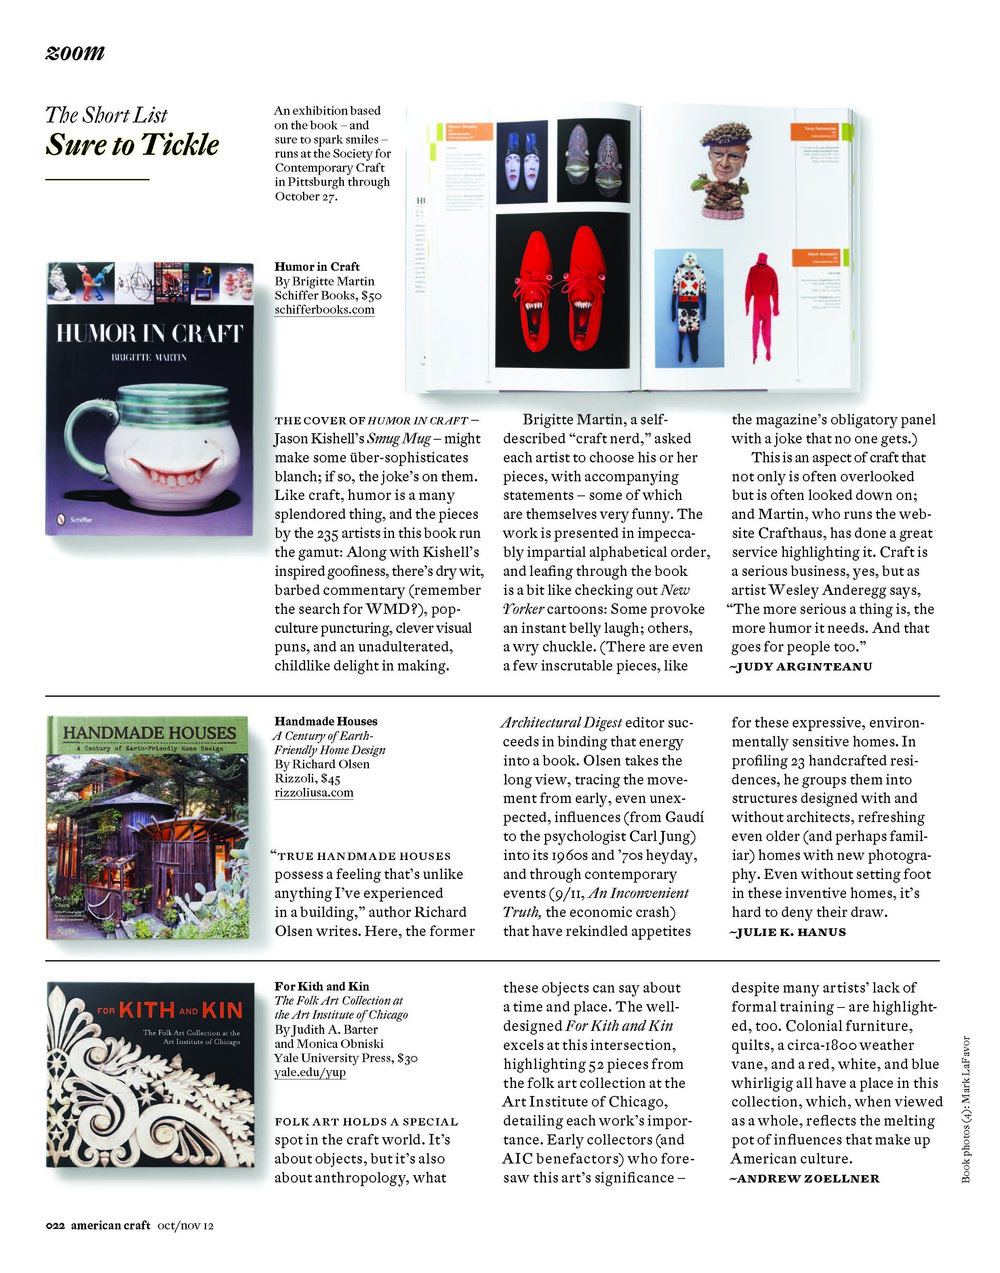 Handmade Houses   reviewed by Julie K. Hanus in   American Craft  , October/November 2012.